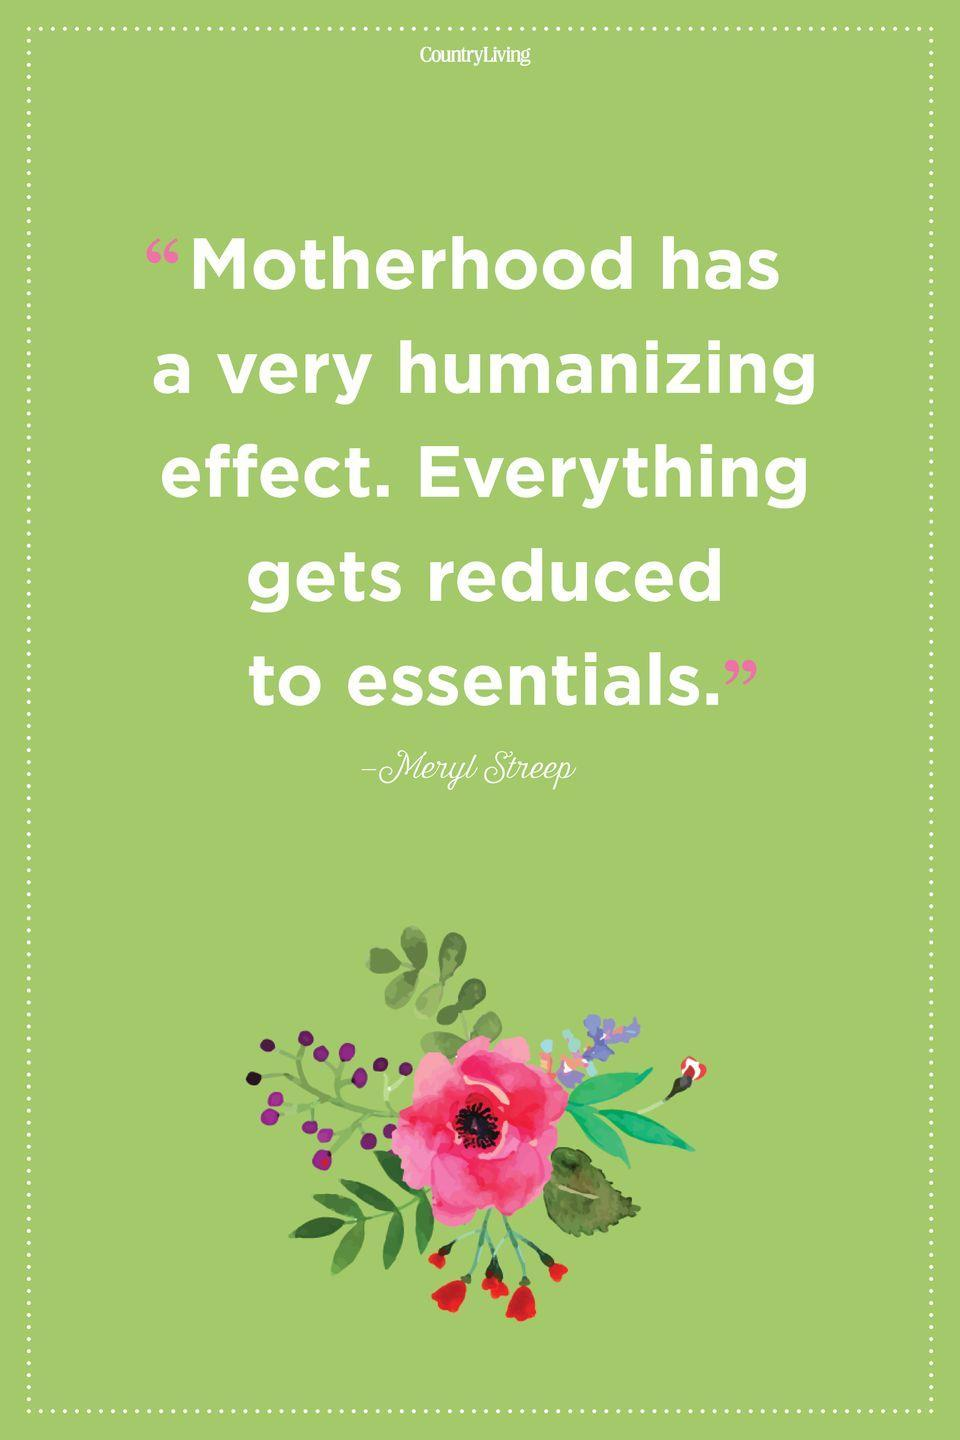 "<p>""Motherhood has a very humanizing effect. Everything gets reduced to essentials.""</p>"